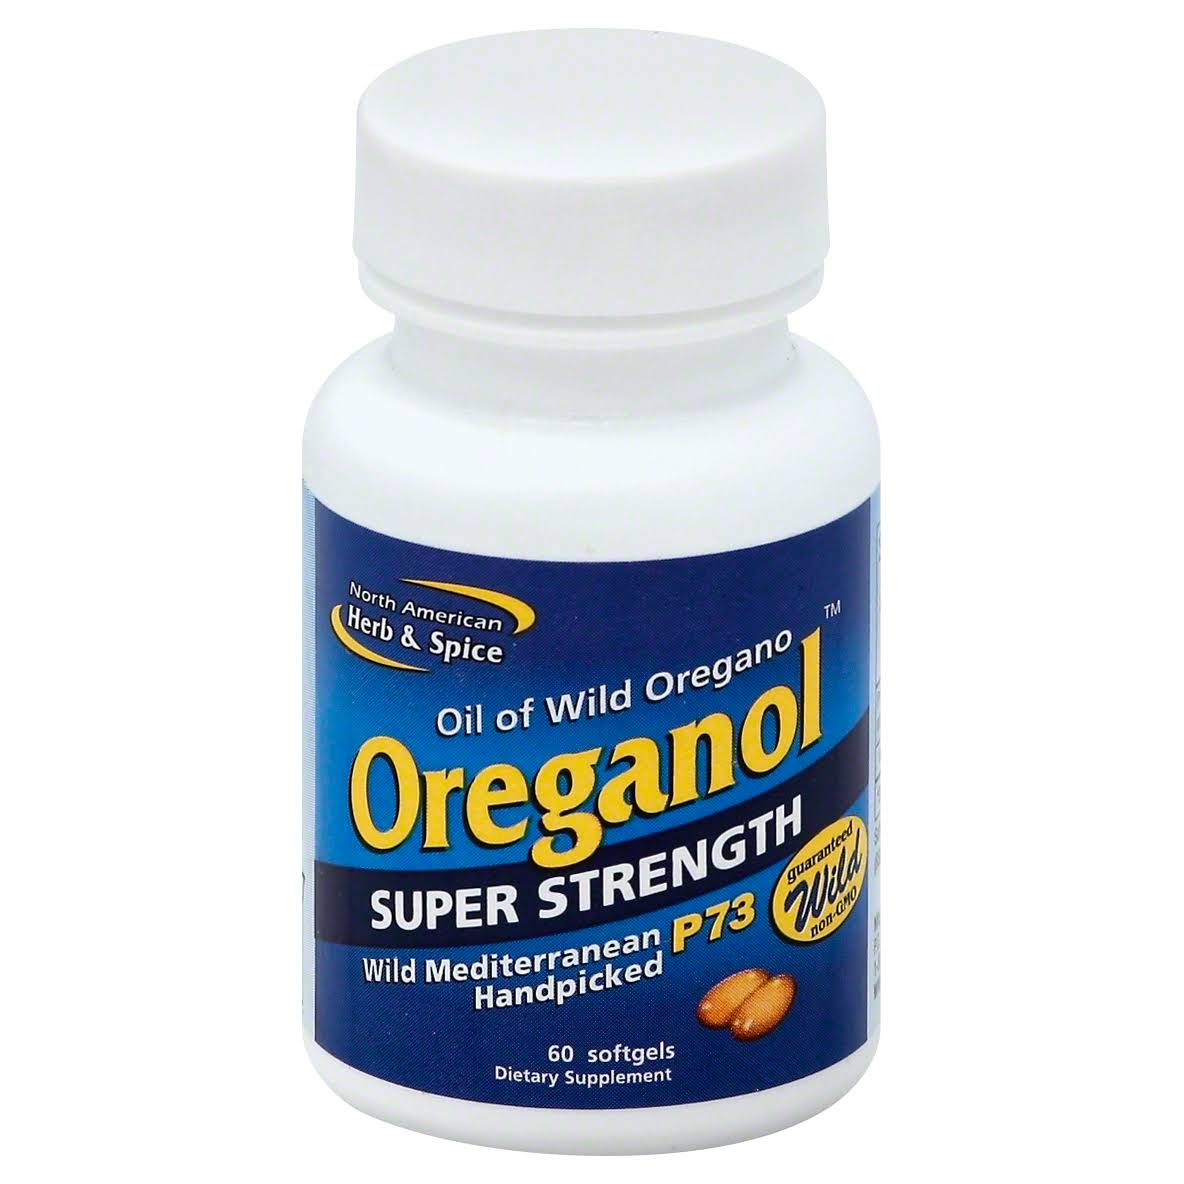 North American Herb & Spice Oreganol Super Strength Supplement - 60 Softgels